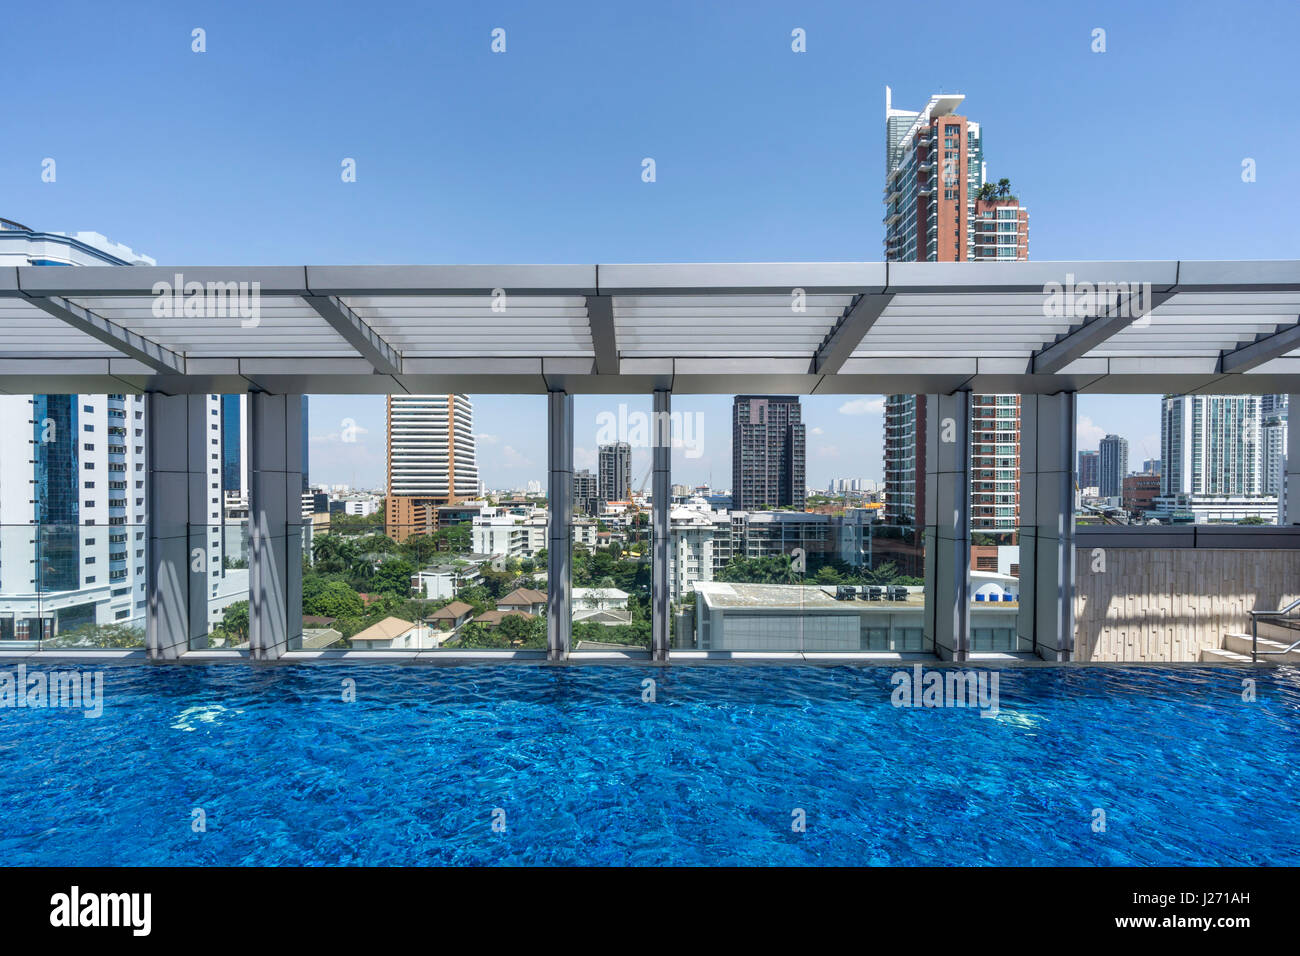 Marriot Hotel Sukhumvit, Pool, Skyline, Bangkok, Thailand Stockbild